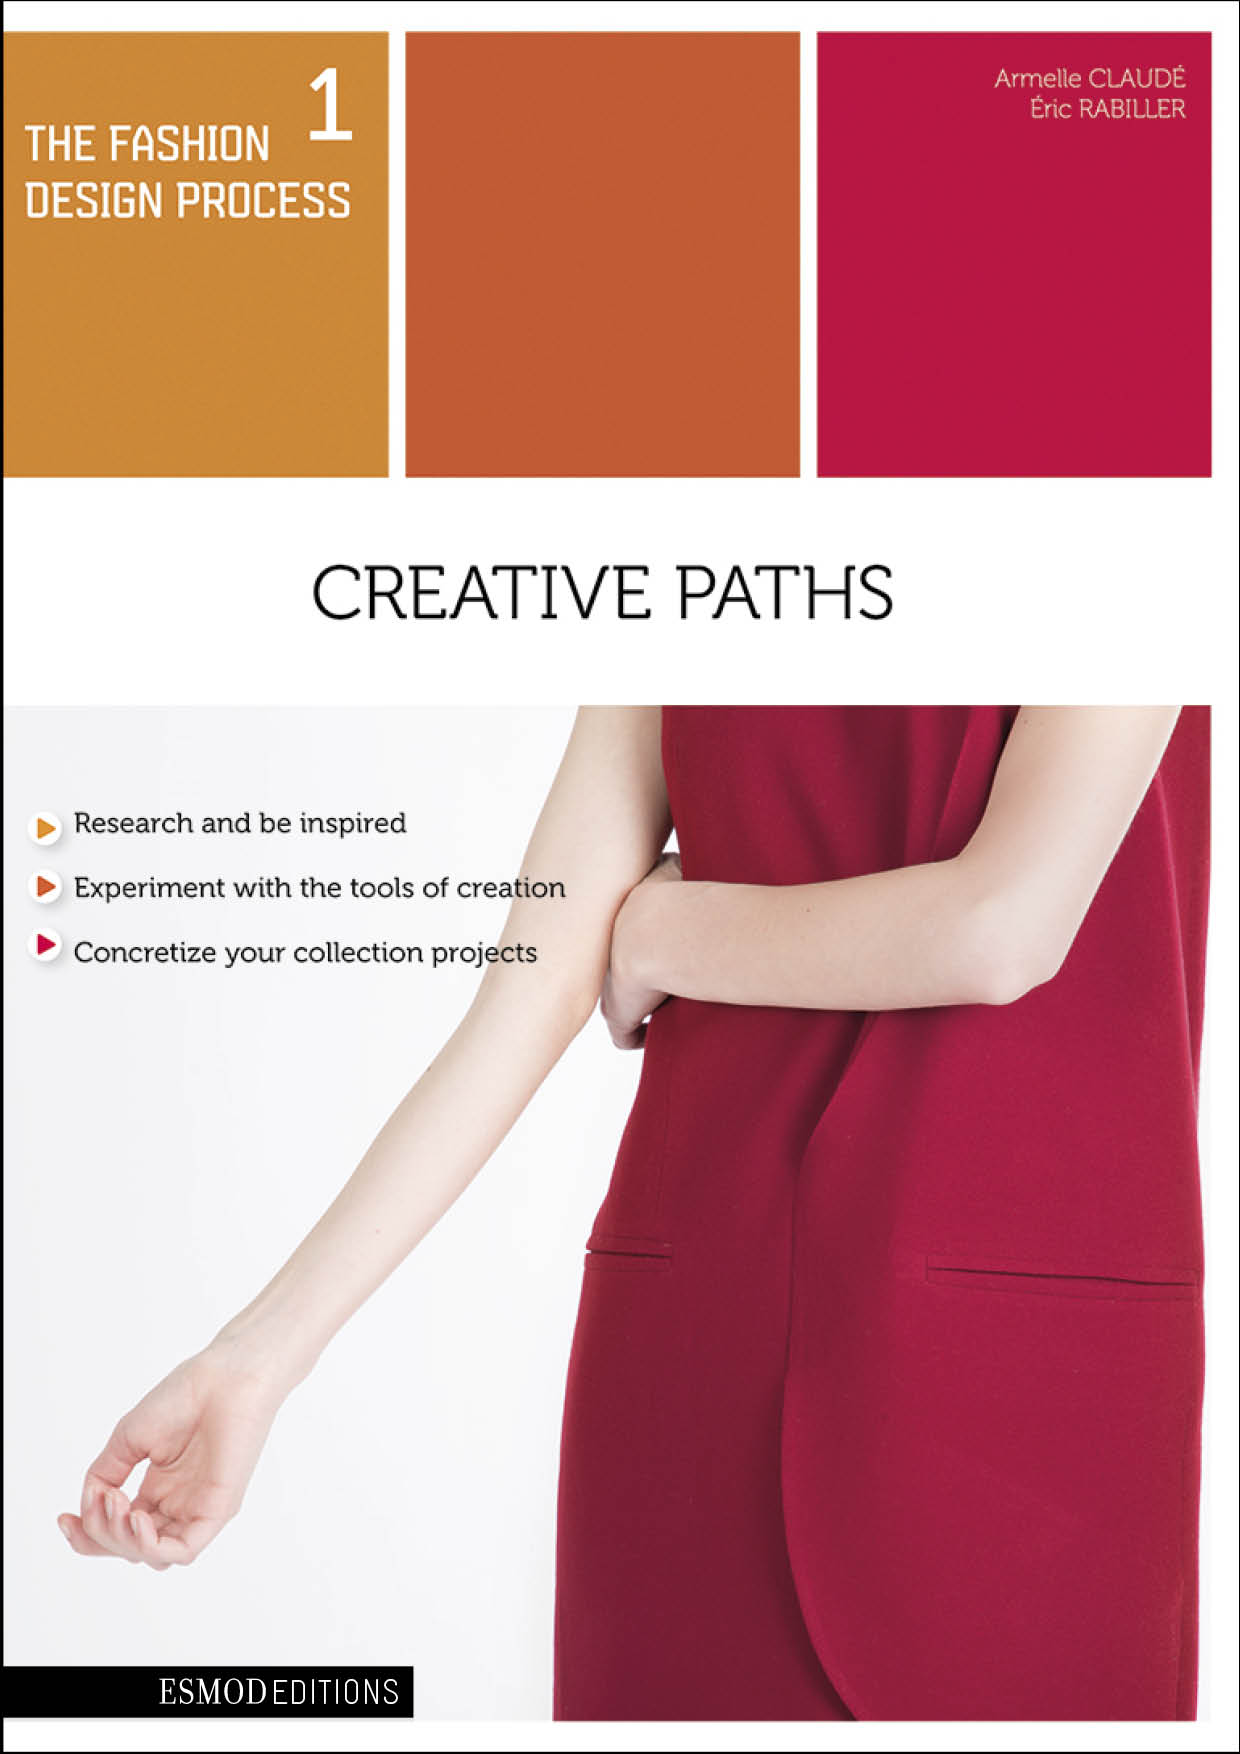 The fashion design process tome 1: Creative paths